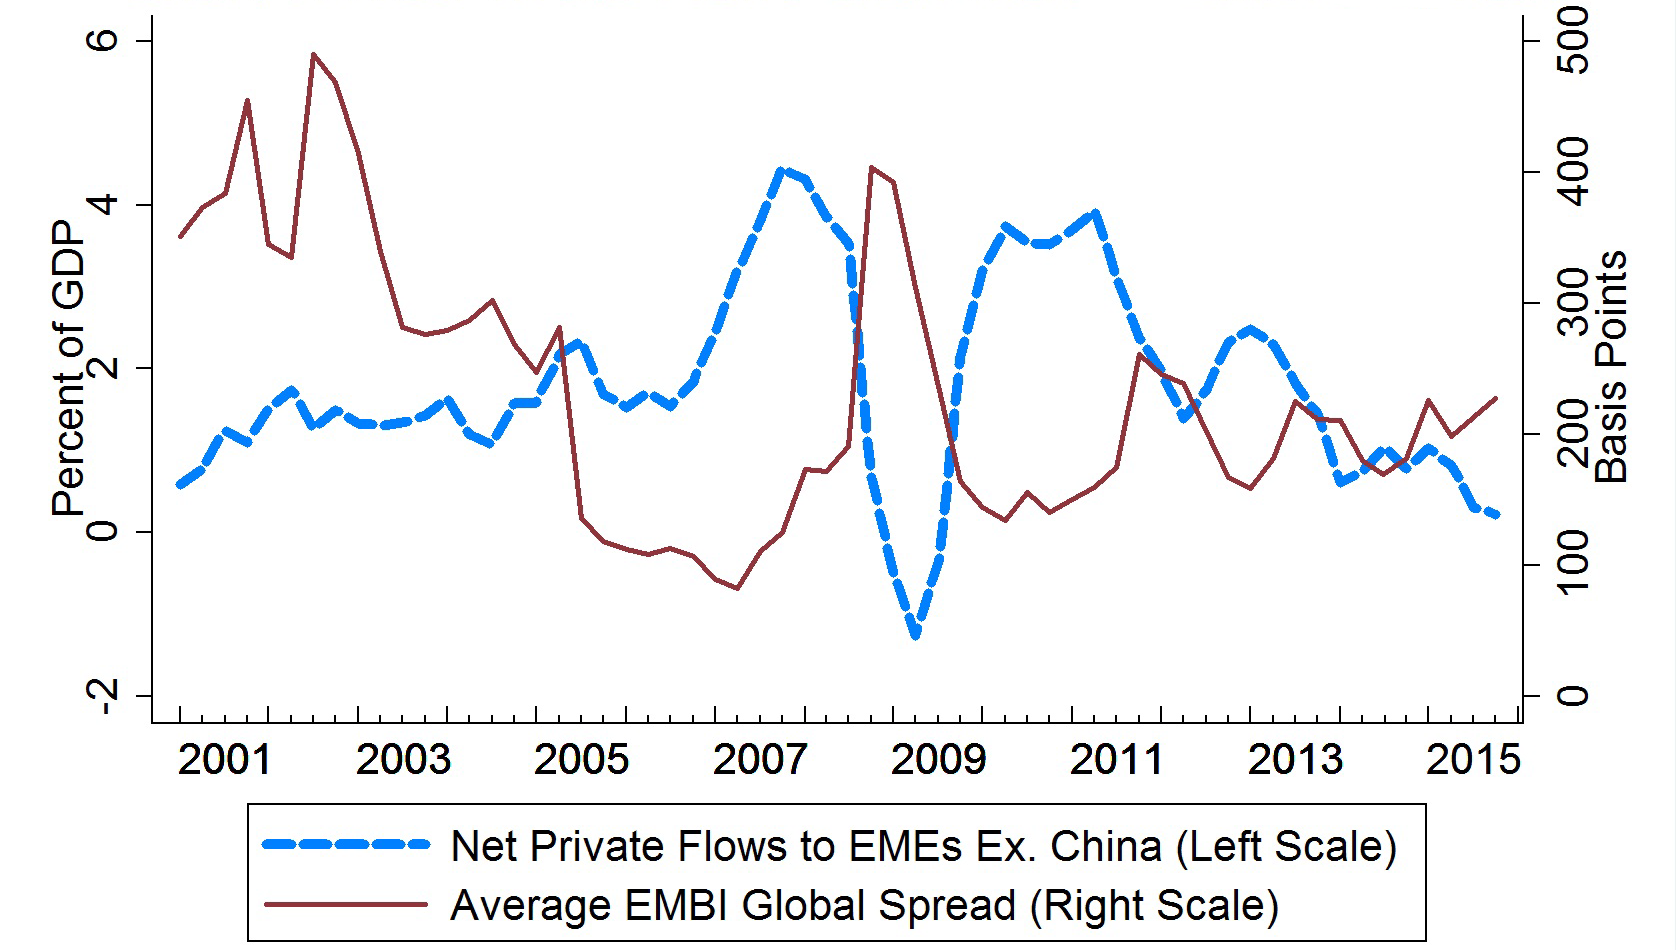 Frb emerging market capital flows and us monetary policy chart 8 net private flows and average embig spread nvjuhfo Gallery